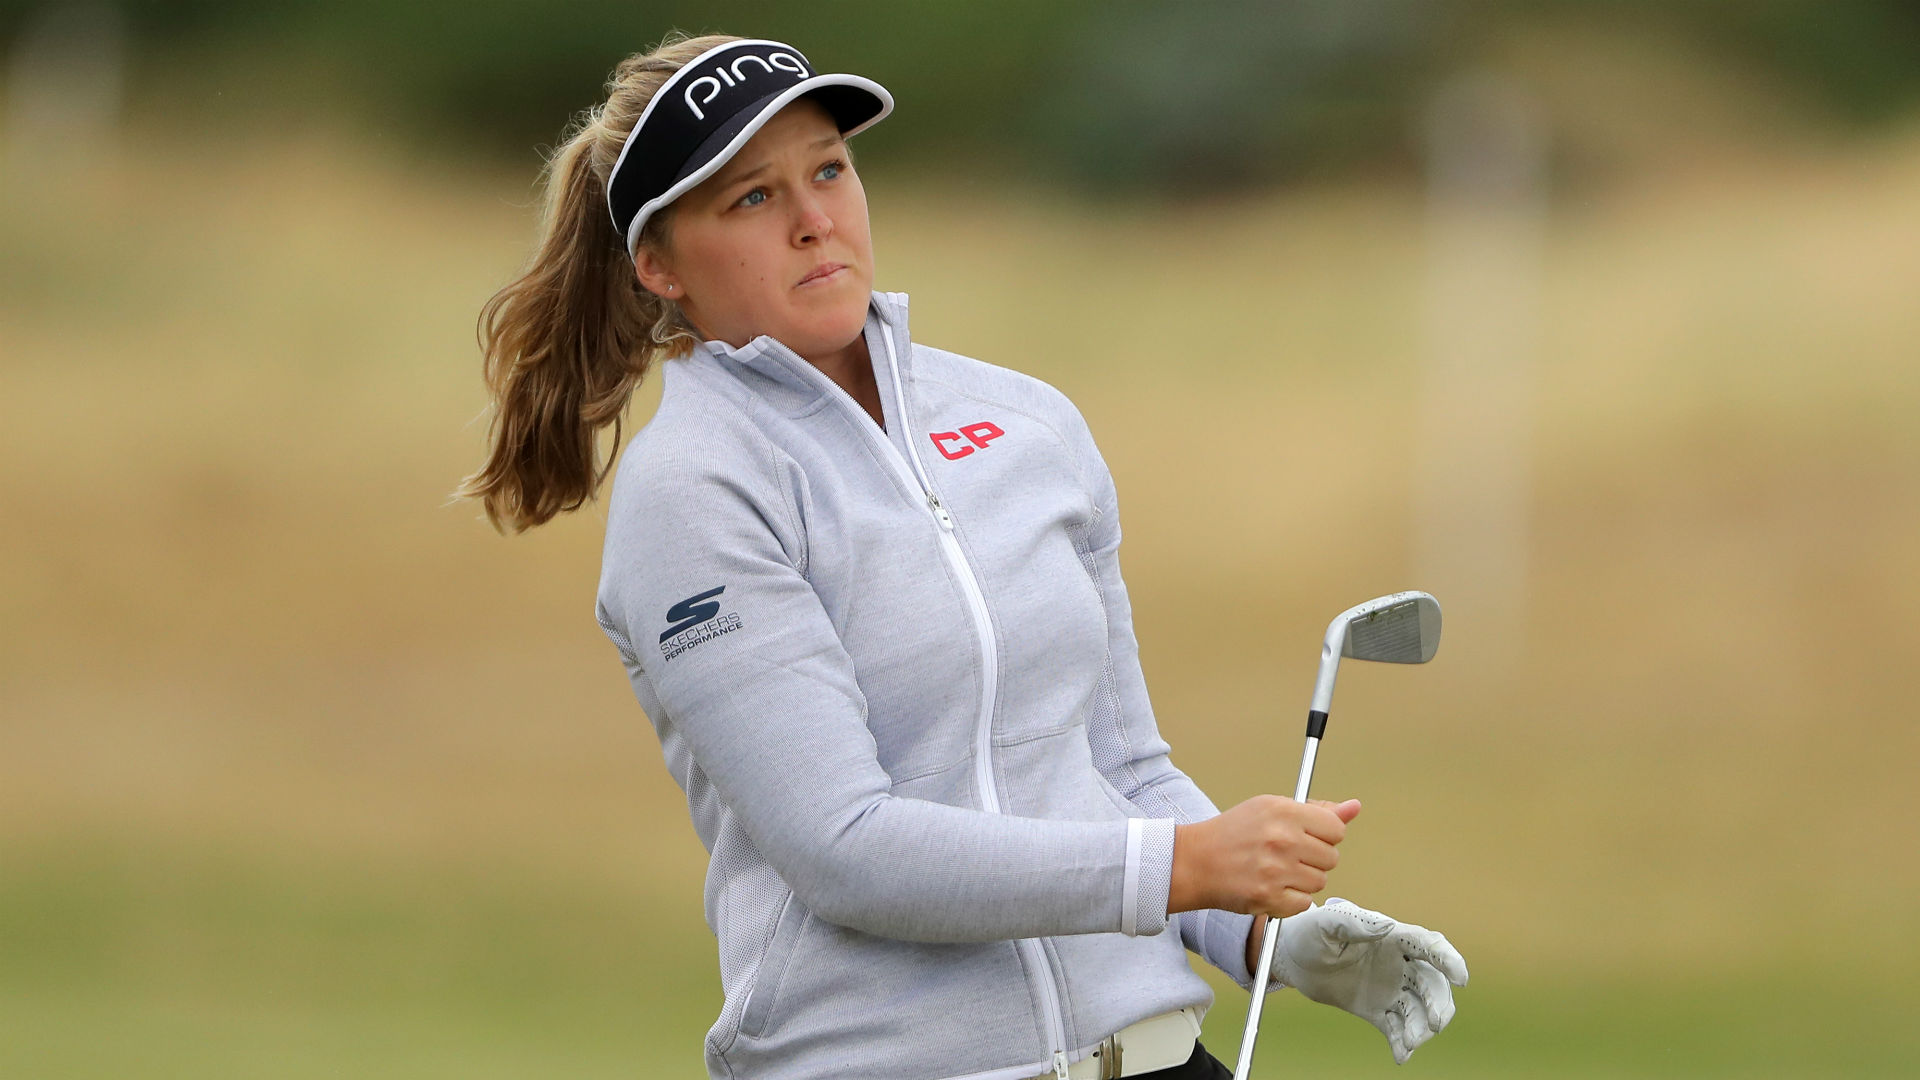 brooke henderson shoots hole in one at women u0026 39 s british